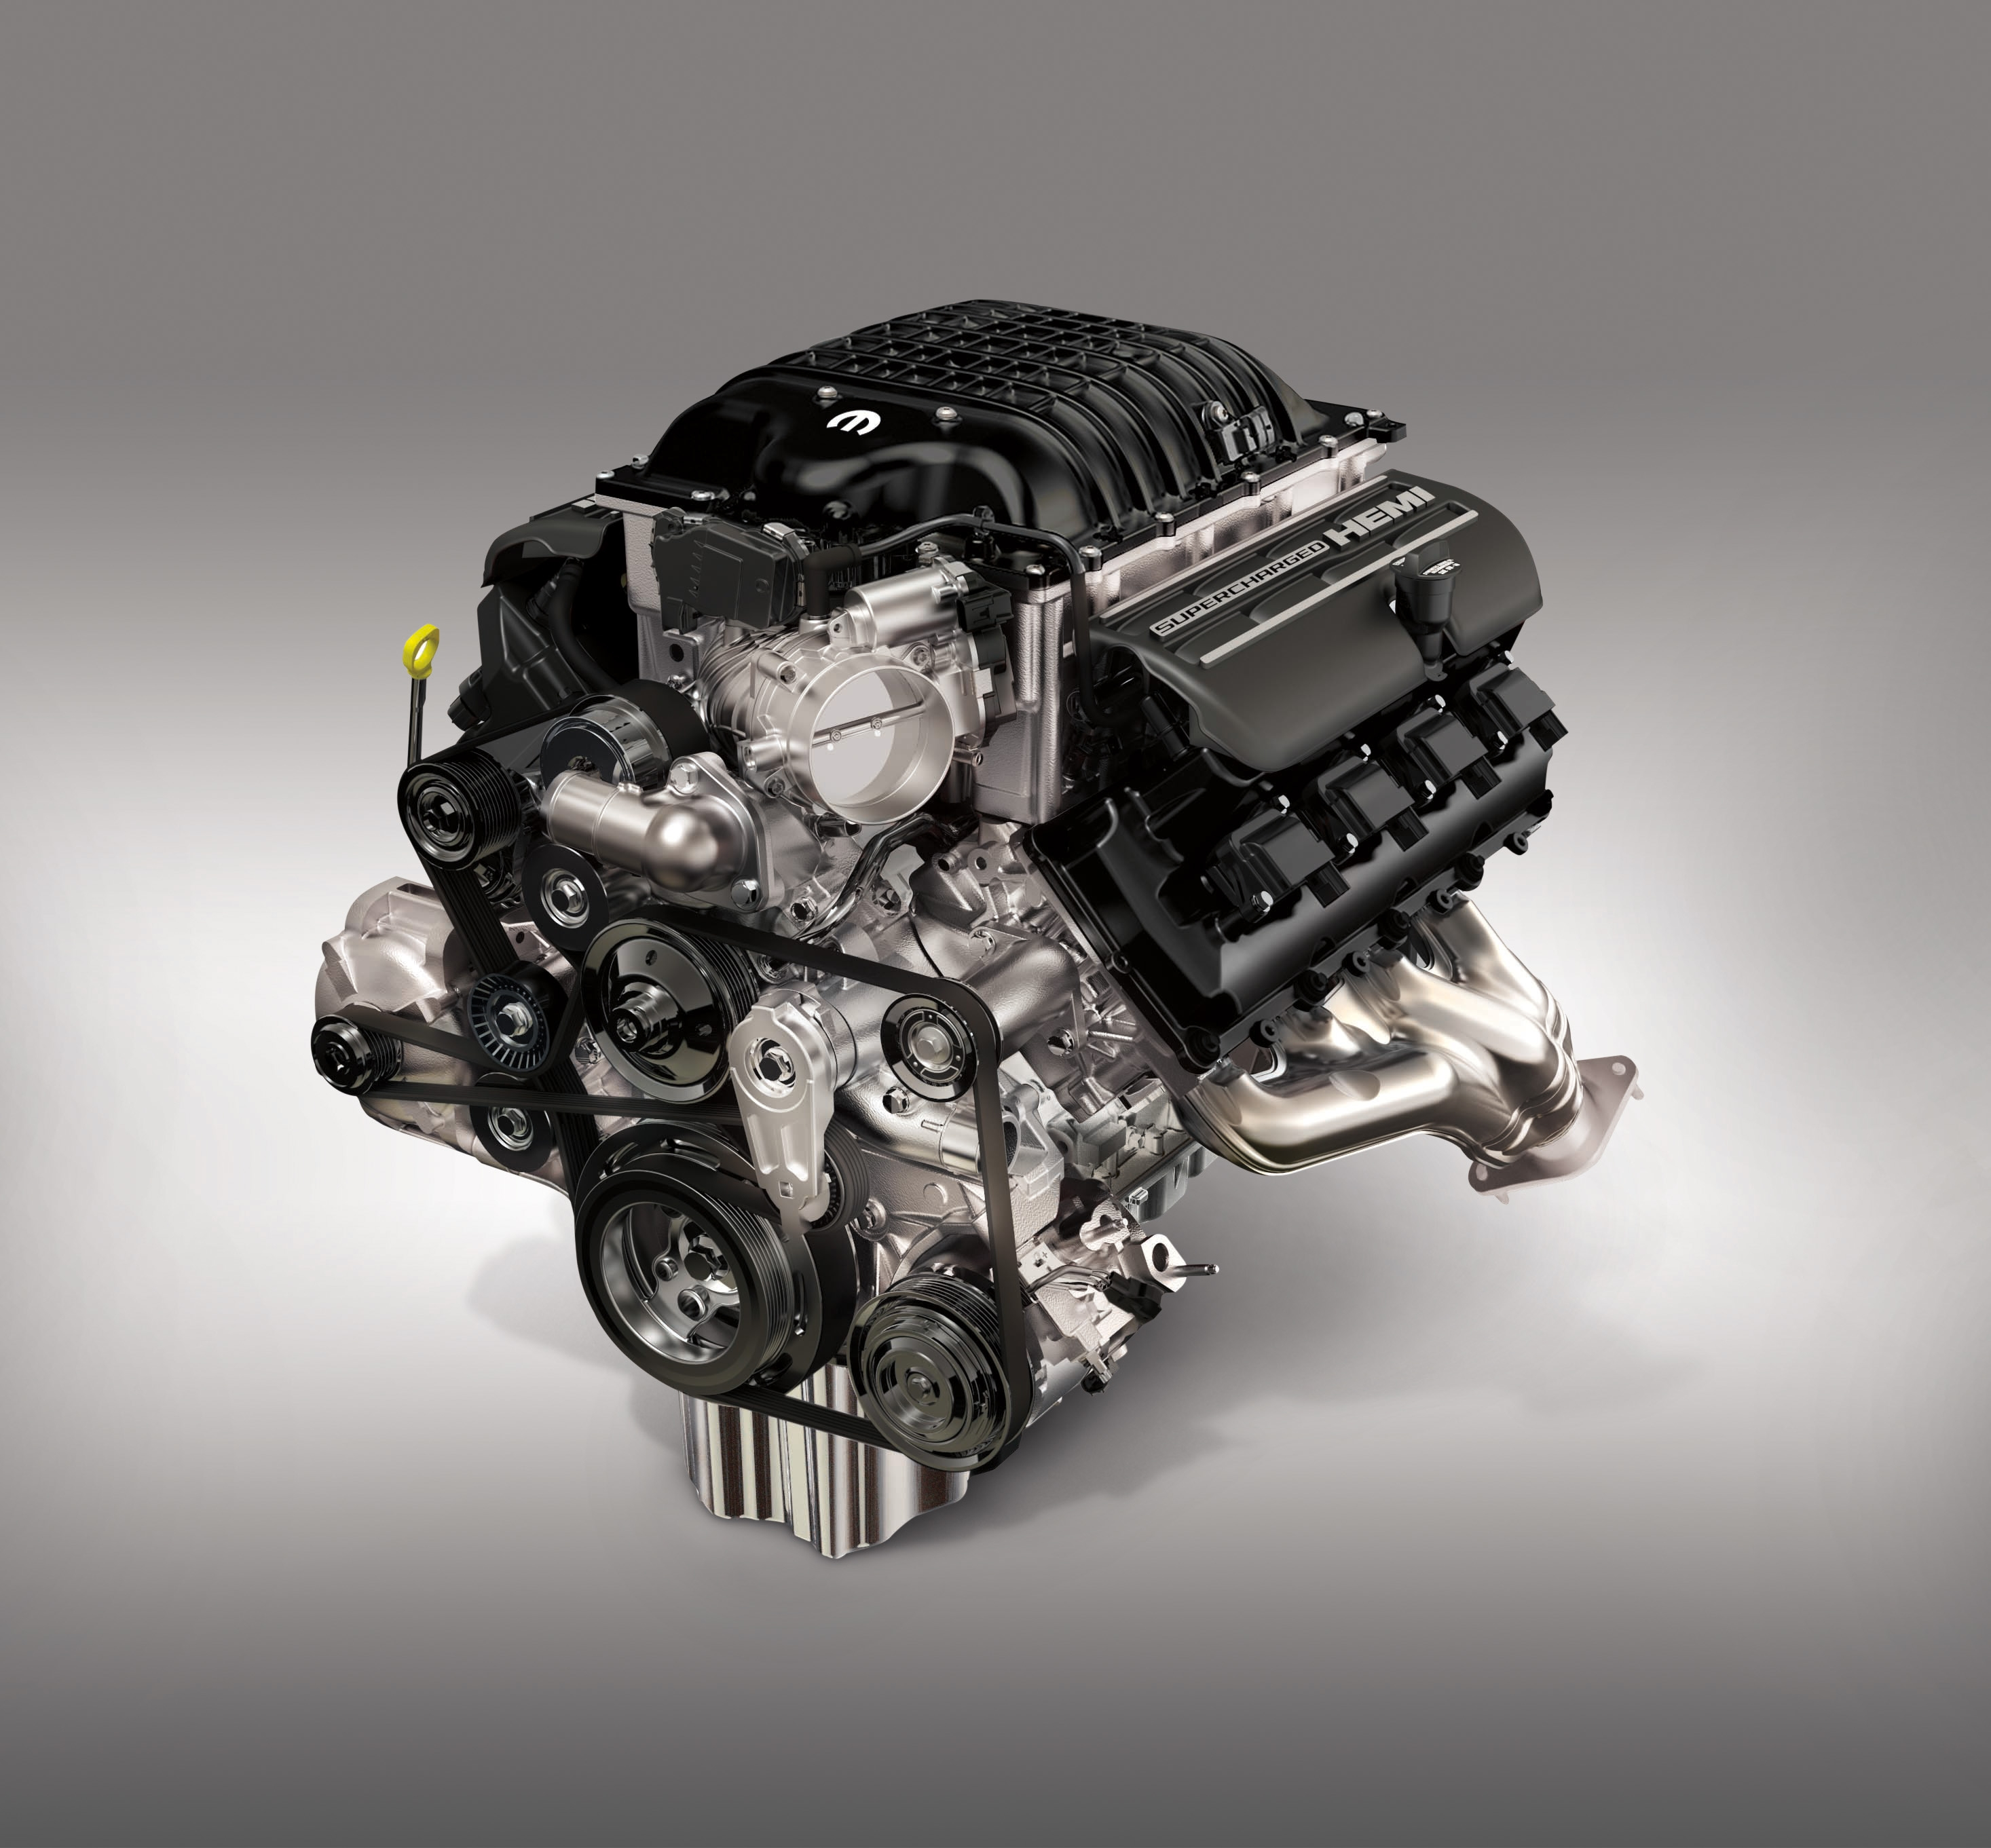 """Mopar is celebrating HEMI Day (4/26) by opening orders for the 1,000 horsepower """"Hellephant"""" 426 Supercharged Crate HEMI® Engine and Kit. Originally unveiled at the 2018 SEMA Show in Las Vegas last fall, the """"Hellephant"""" is a Mopar-first for a 1,000-horsepower crate engine kit offered by an Original Equipment Manufacturer (OEM), paired with a stunning 950 lb.-ft. of torque."""